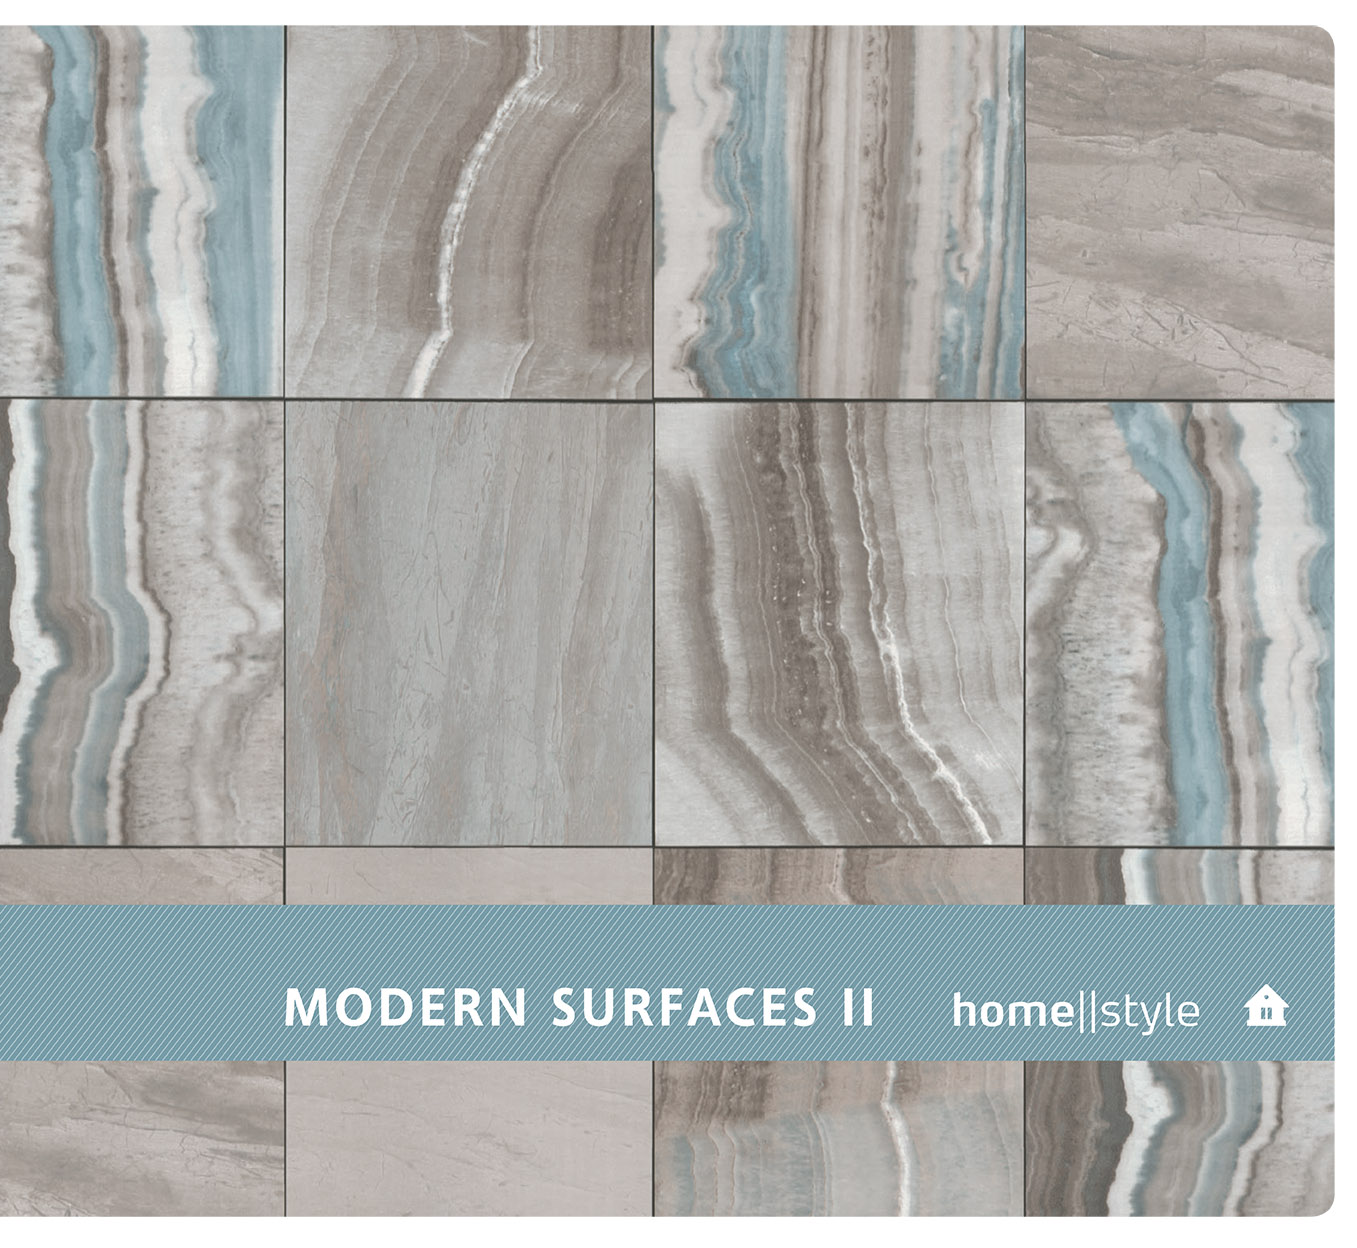 Modern Surfaces II